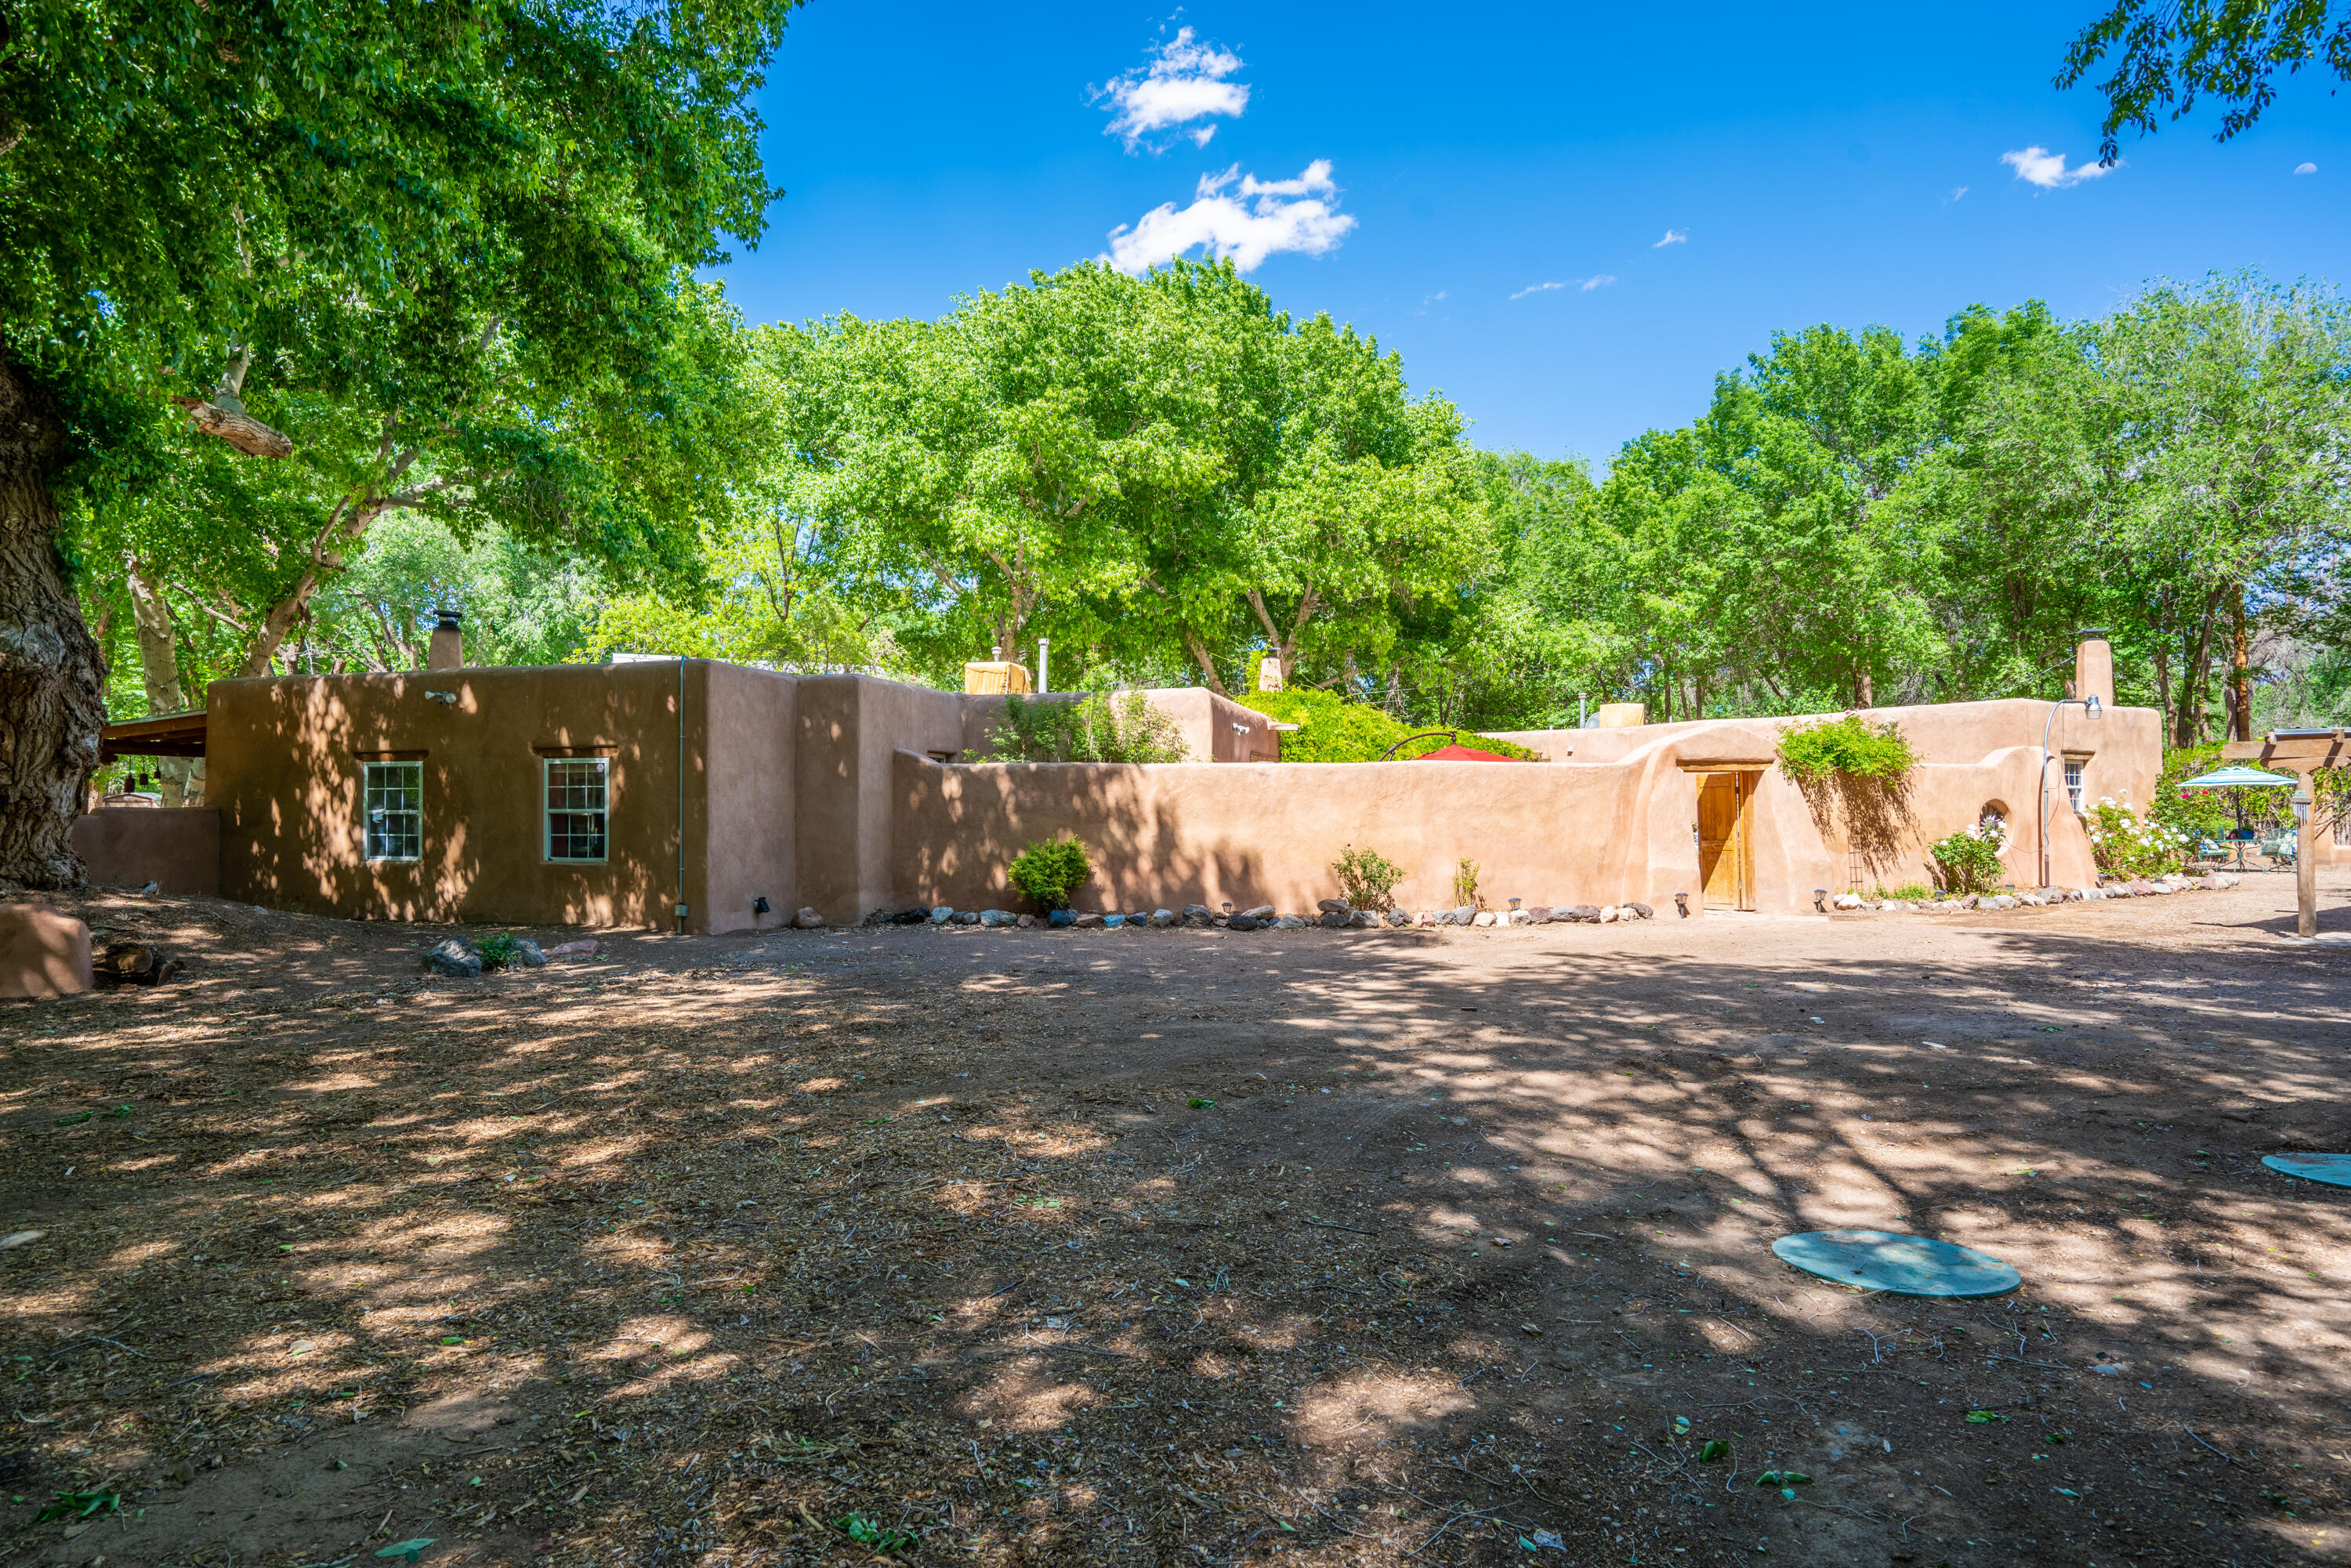 Incredible & Rare Gem in beautiful Corrales. This Secluded Adobe Home sits on 3.2 acres, lined with beautiful Sheltering Cottonwoods along this desirable private road. Updated open floor plan Kitchen, spacious Granite countertops & Island fitted with Newer Appliances, large pantry & wet bar. Two Spacious Living areas. Lustrous classic brick & tile floors Aloft Timber beam ceilings, skylights, five custom Kiva fireplaces  4Bedrooms possible 5. 3 bathrooms. Dreamy Garden courtyard for outdoor living & entertaining. This Rare property also provides extensive horse facilities to include an 8 stall barn, 2 Tack rooms, Arena, Pasture, Corrales ditch, irrigation & direct trail access. Great Big Workshop or Barn. This is your chance to live beautifully in the Enchanting Village of Corrales